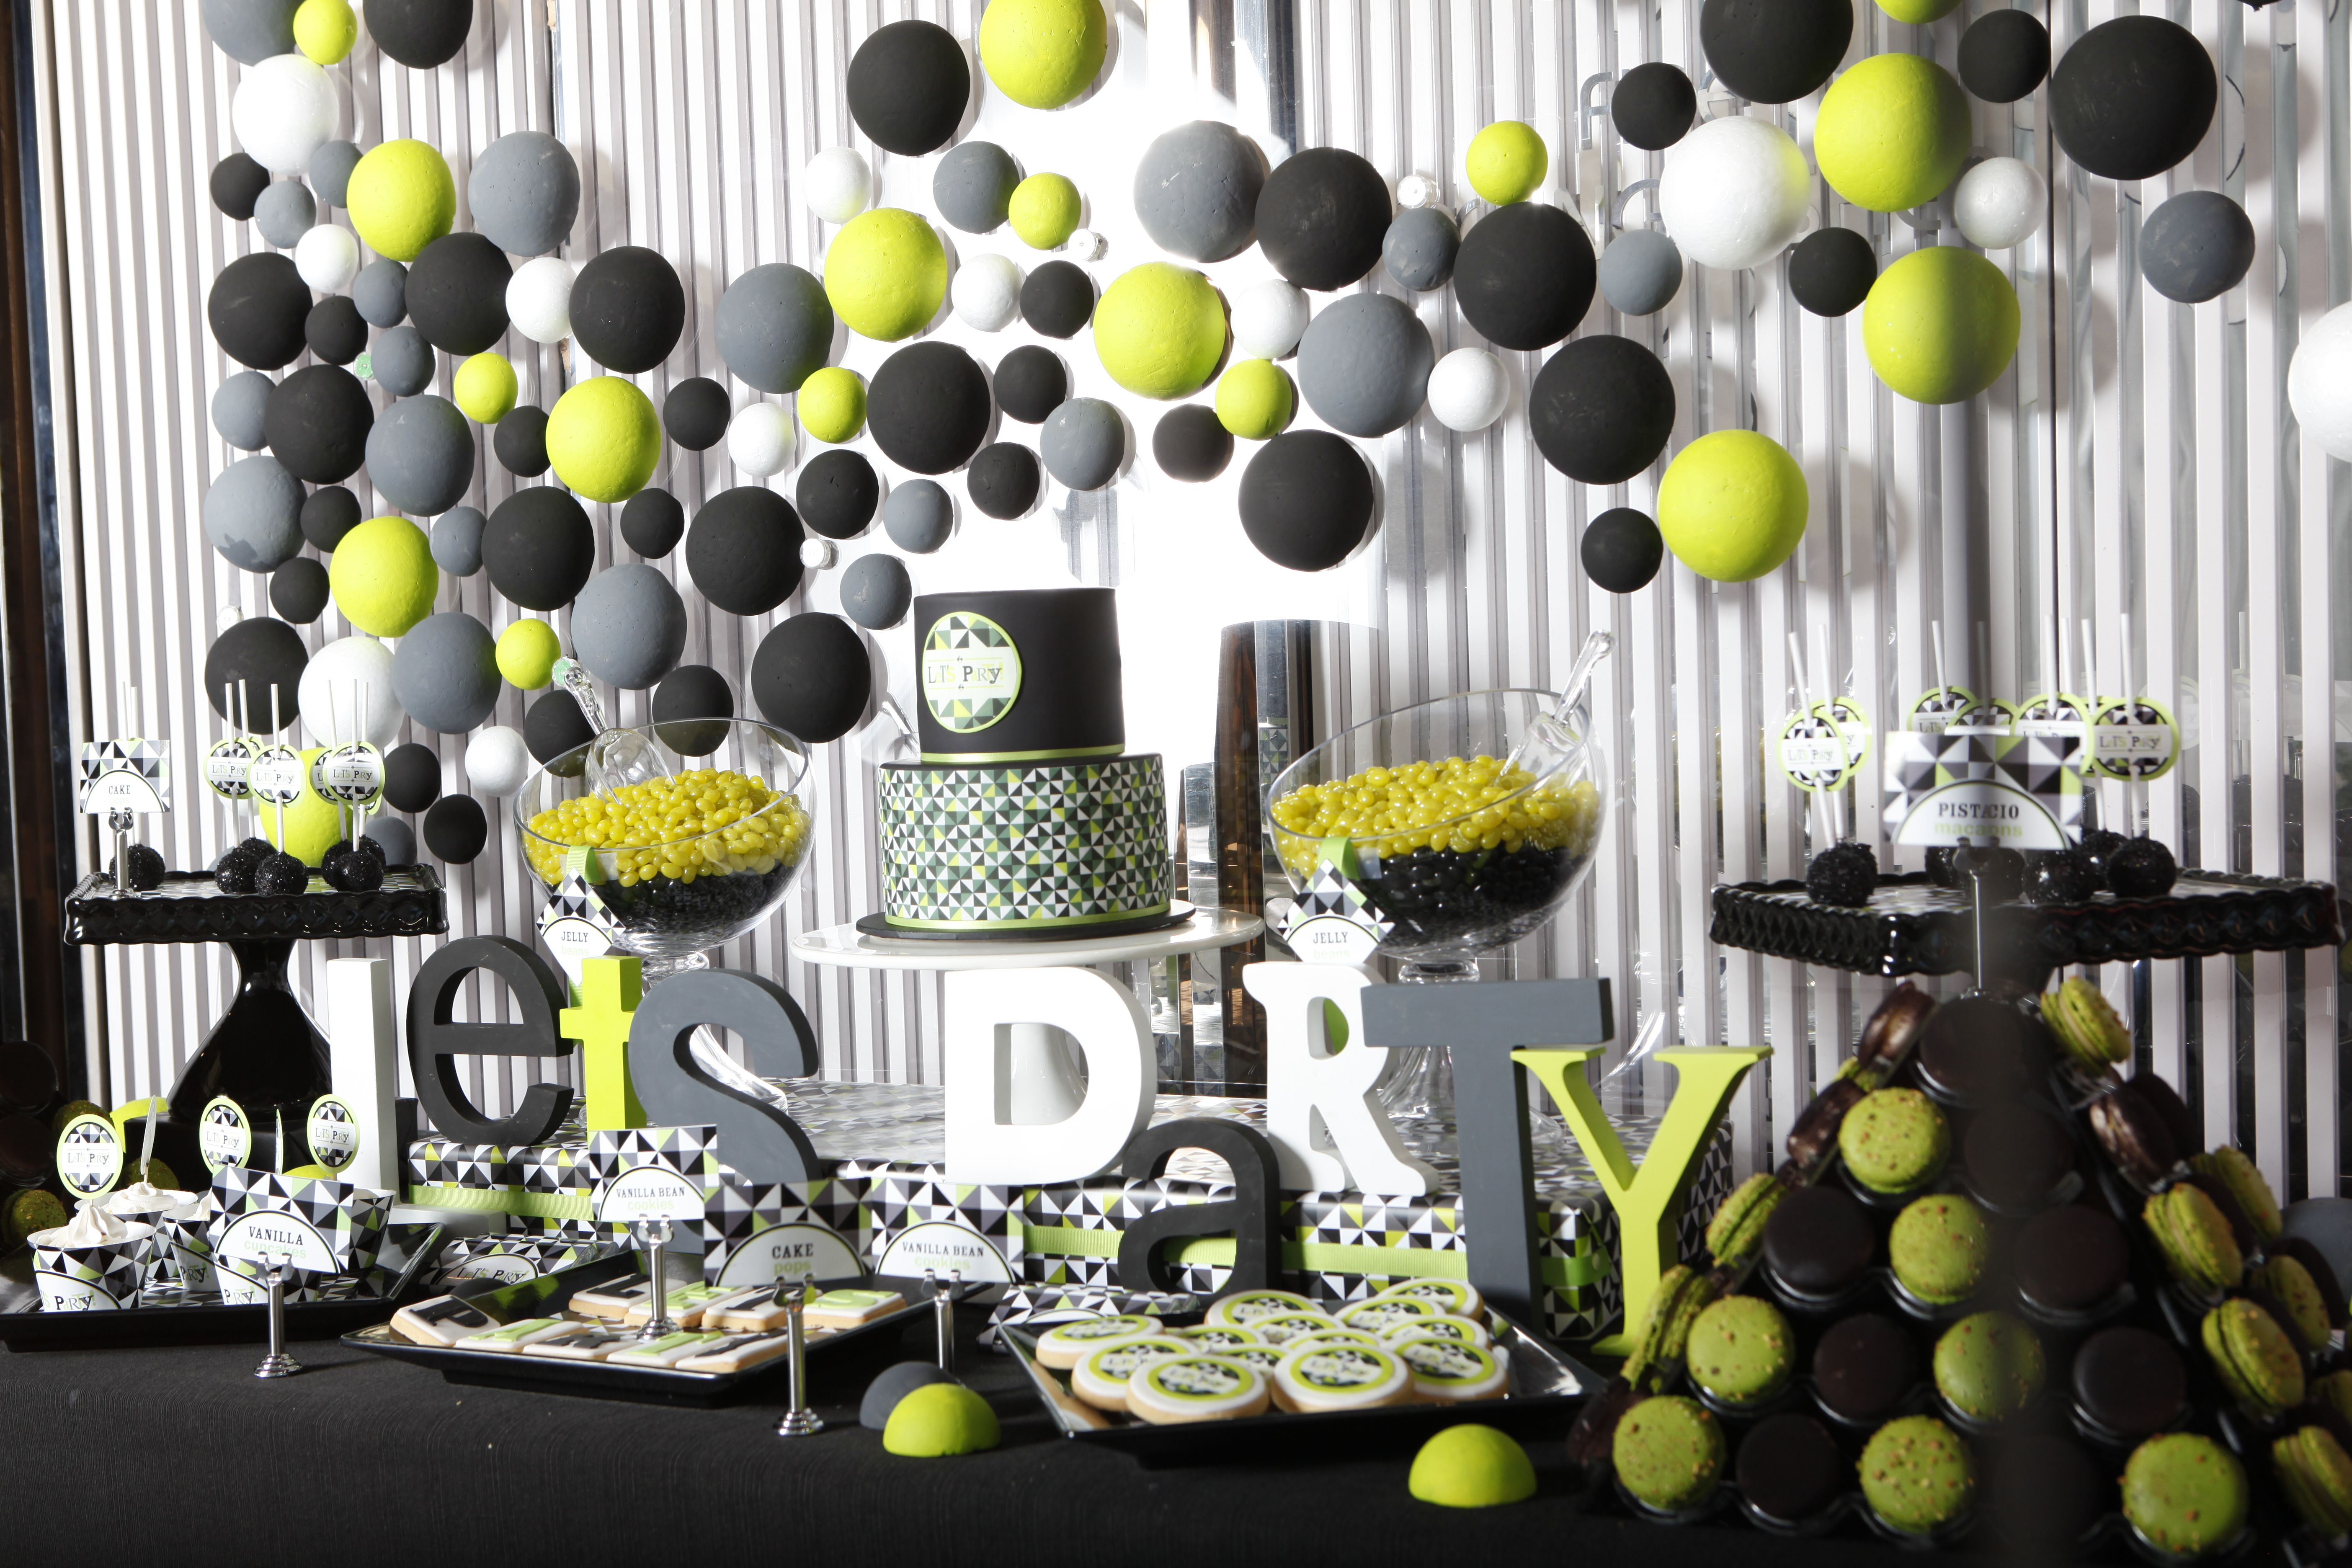 Adult party table decoration ideas - Adult Party Table Decoration Ideas 18